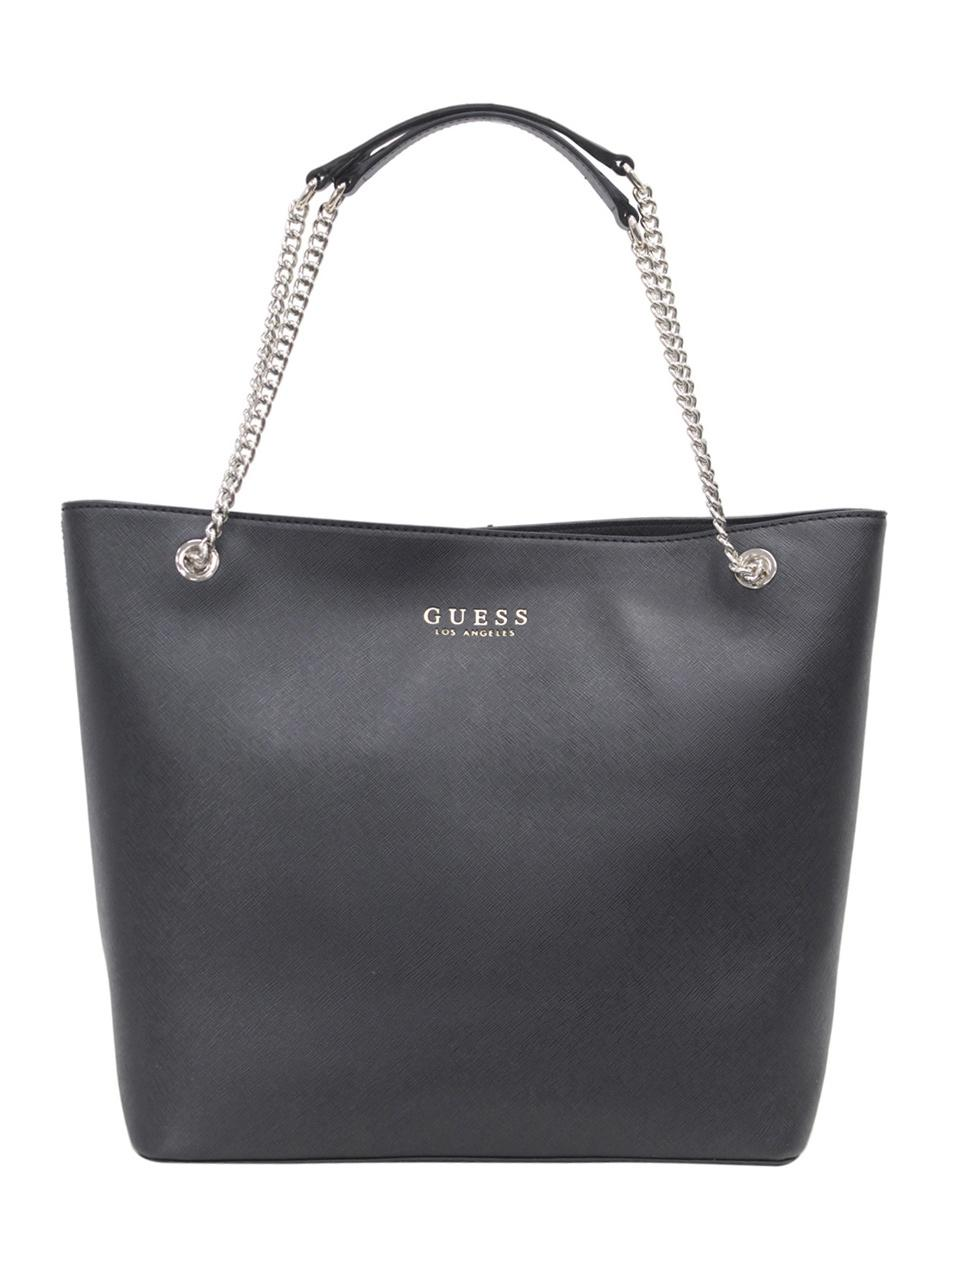 8c3cea3b1de Tote Negro Robyn Mujer Guess Ebay Bolso xYpaAqg